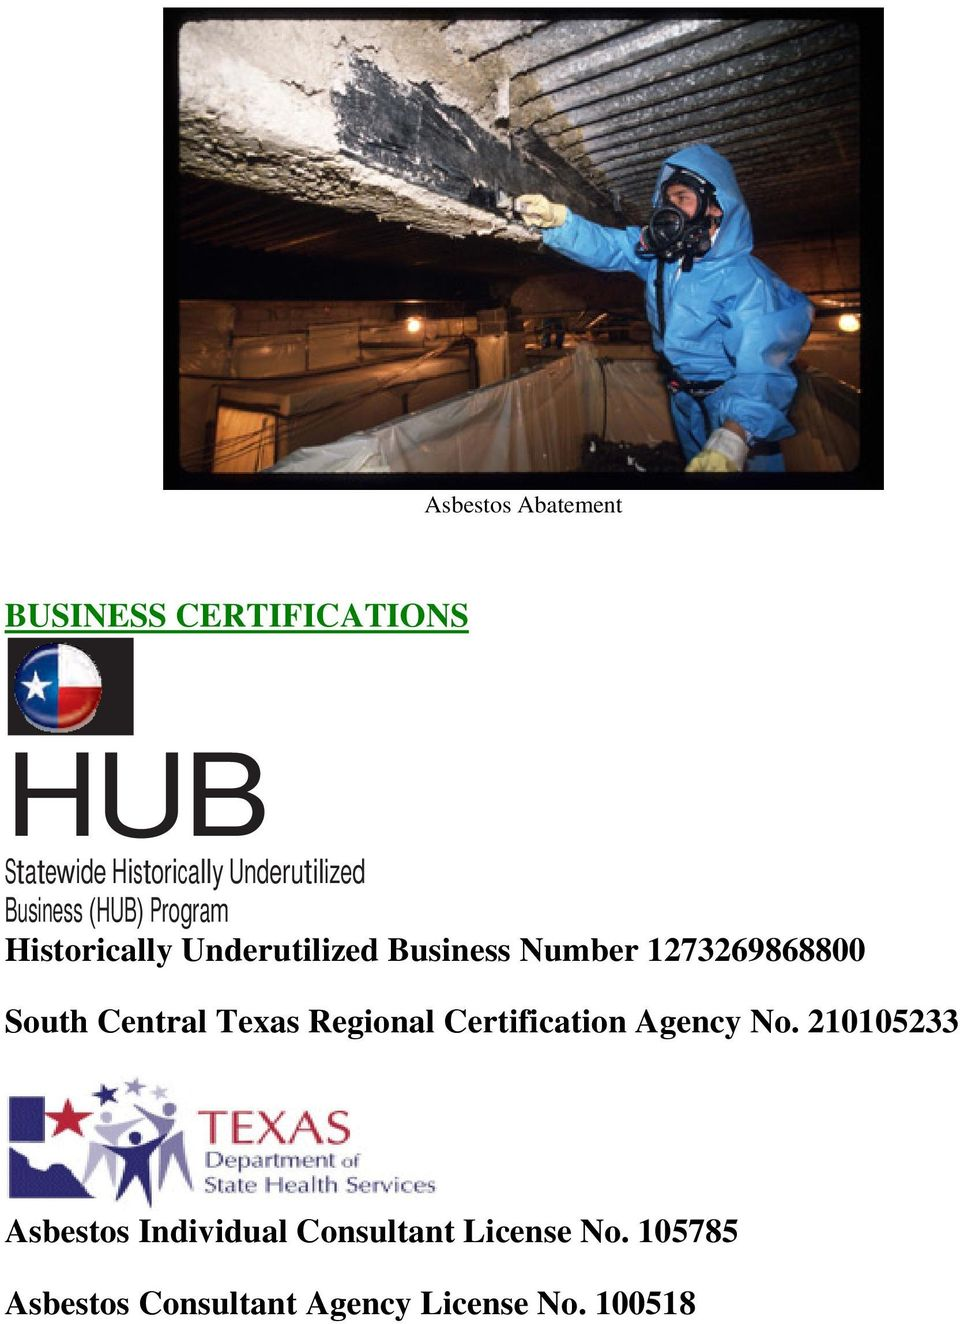 1273269868800 South Central Texas Regional Certification Agency No.